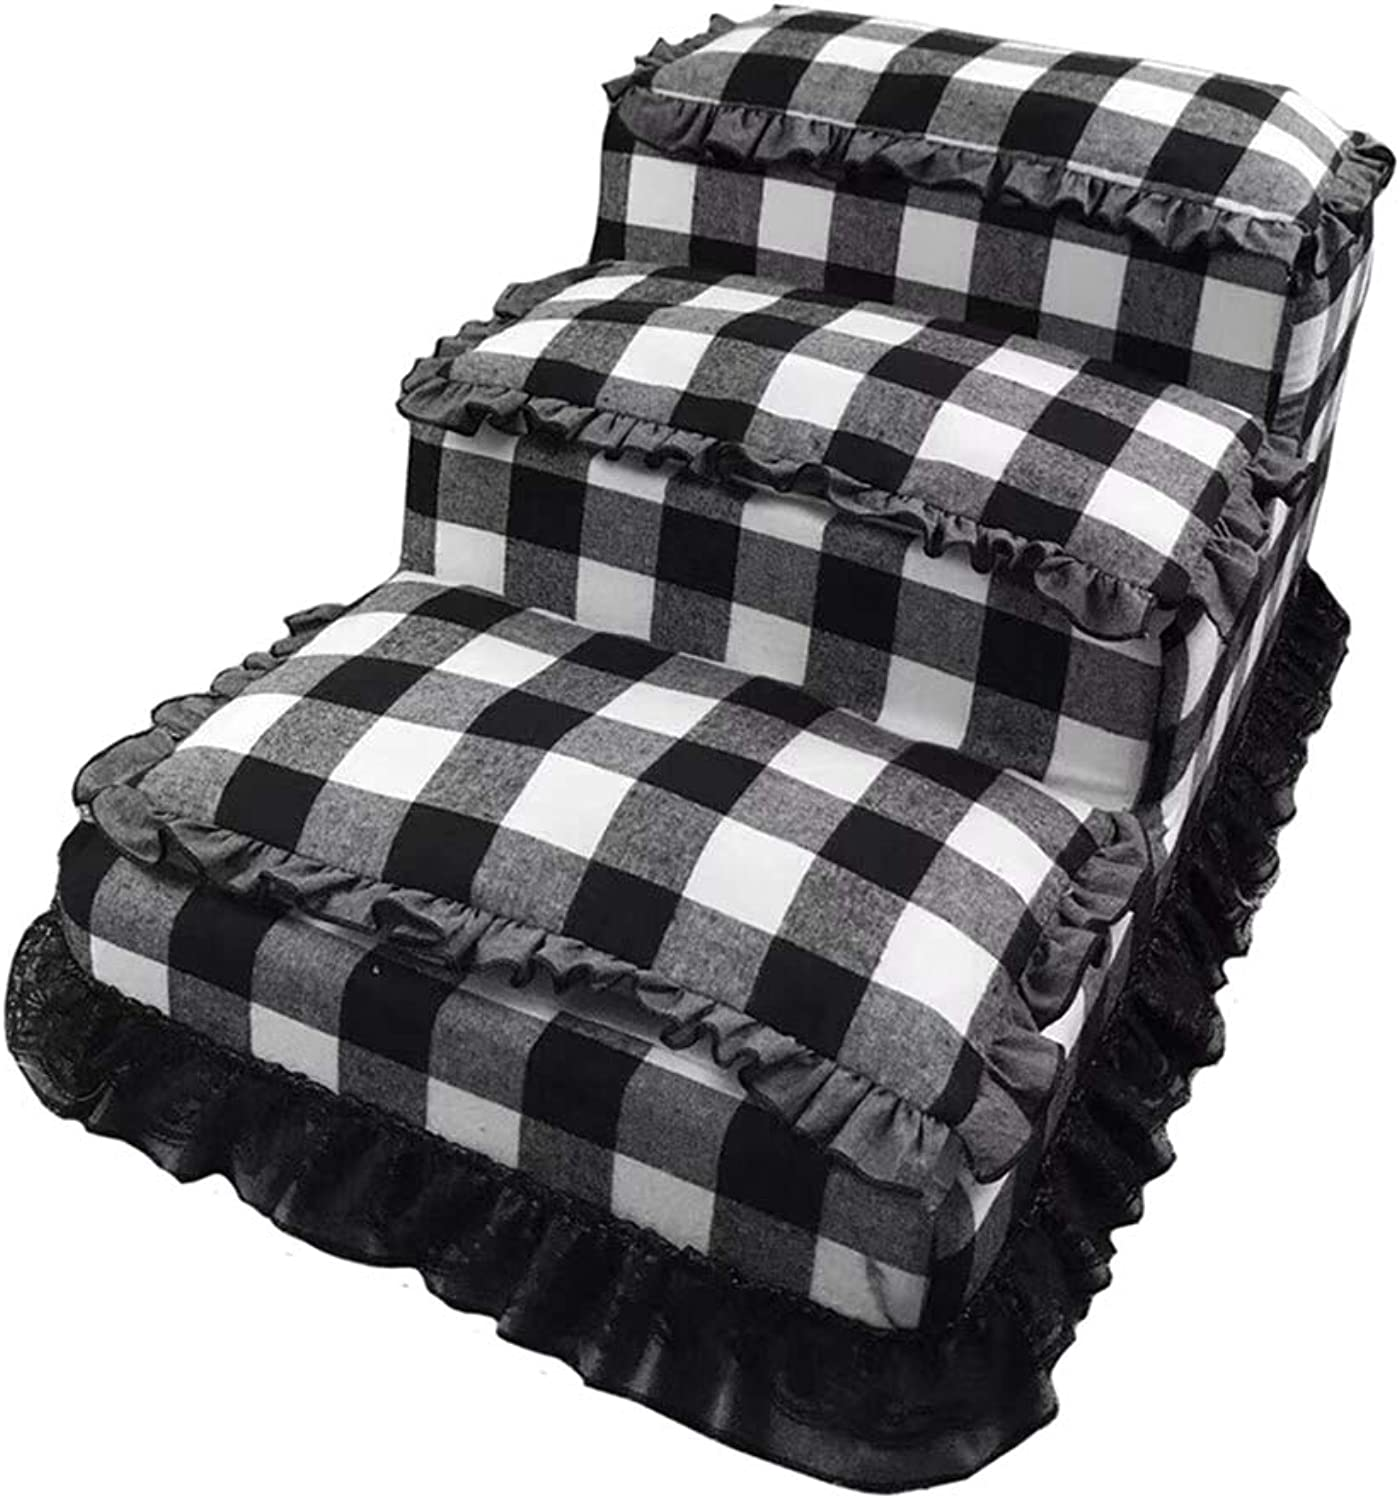 LXLA  Pet 3 Step Stairs for Dog Cat, Portable, Removable Washable, Black and White Grid, 60 × 40 × 33cm